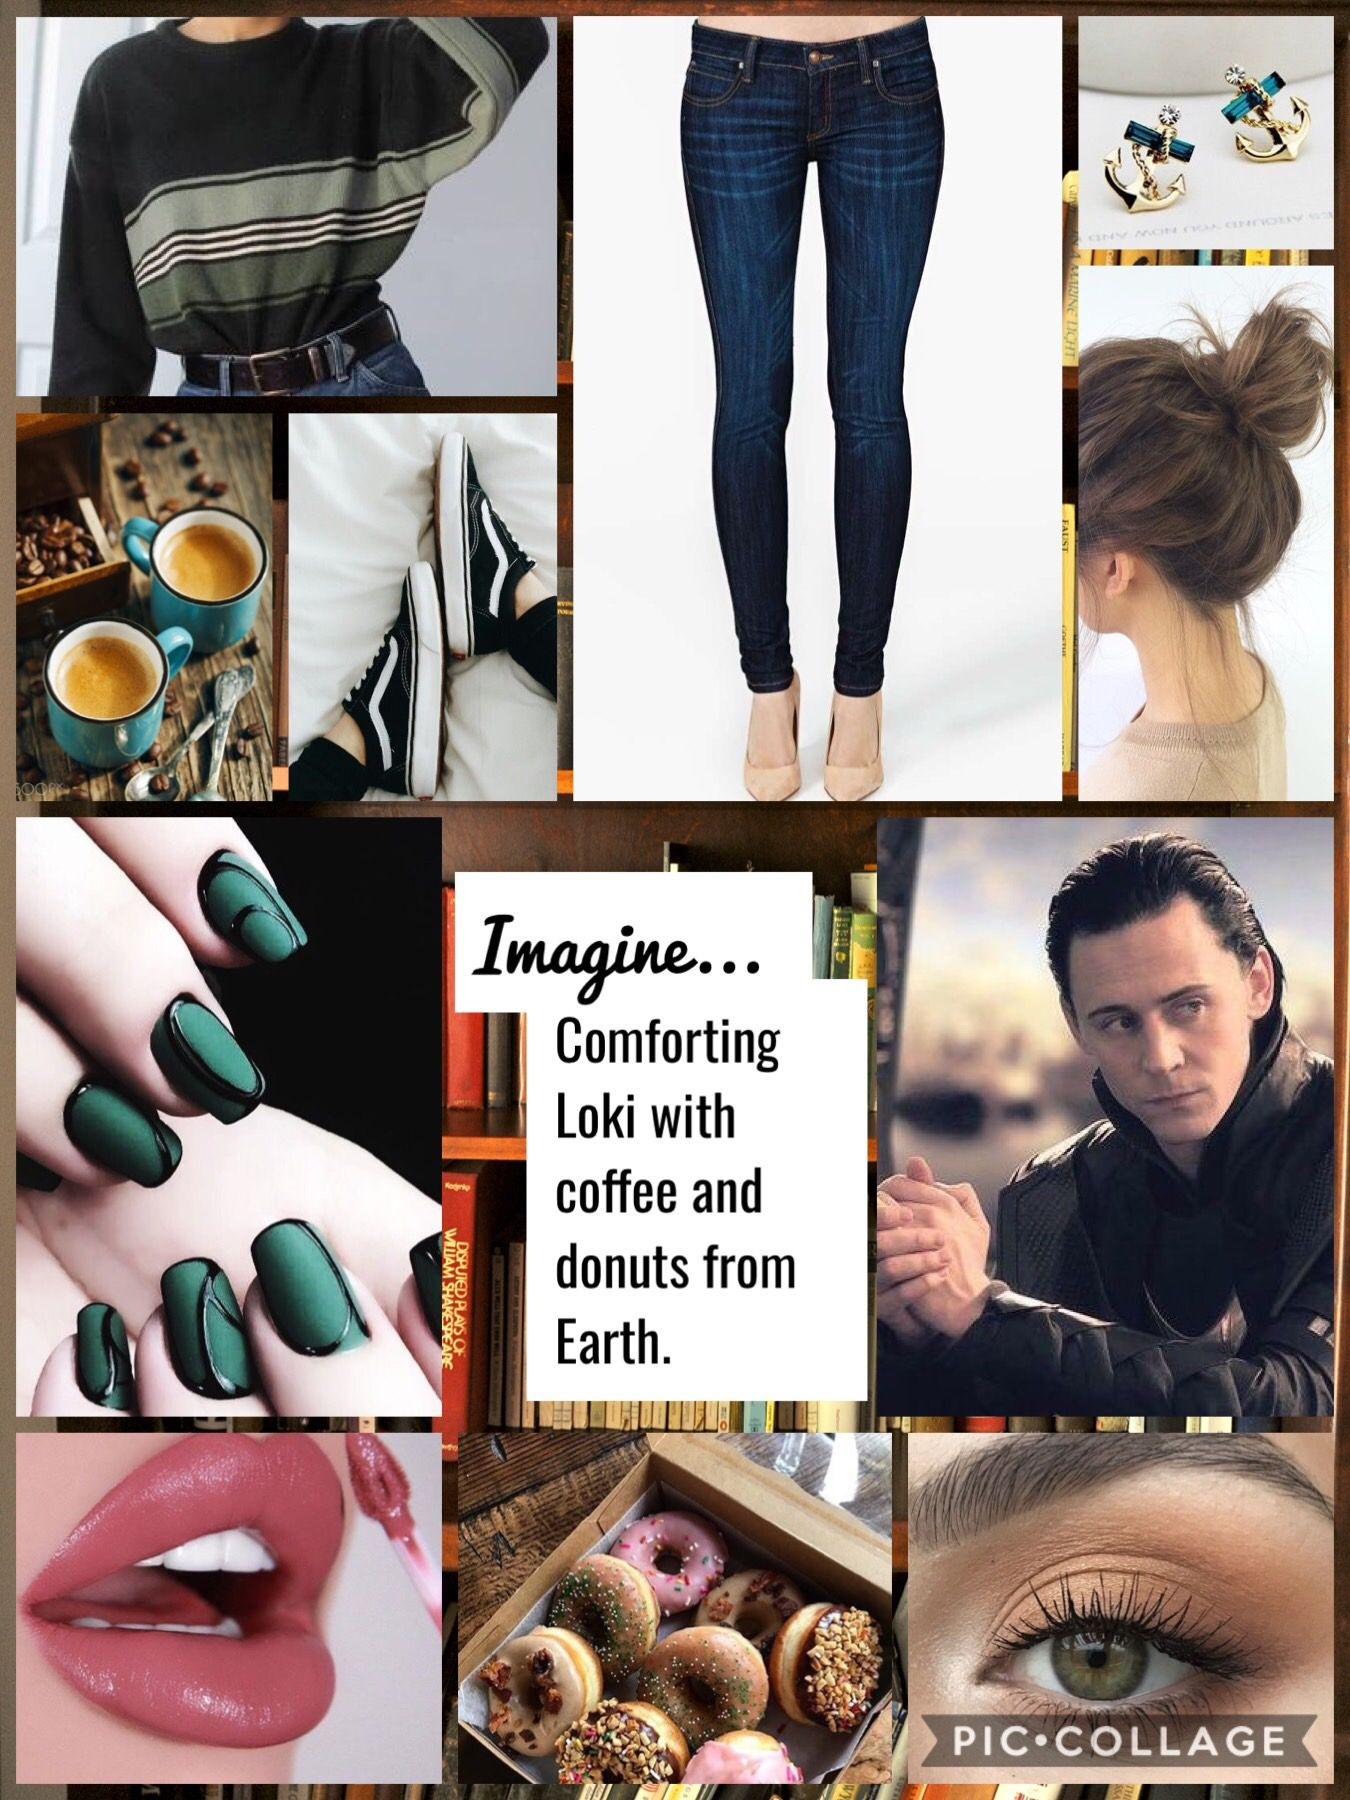 Pin by Mikayla Papa on outfits   Avengers imagines, Marvel films